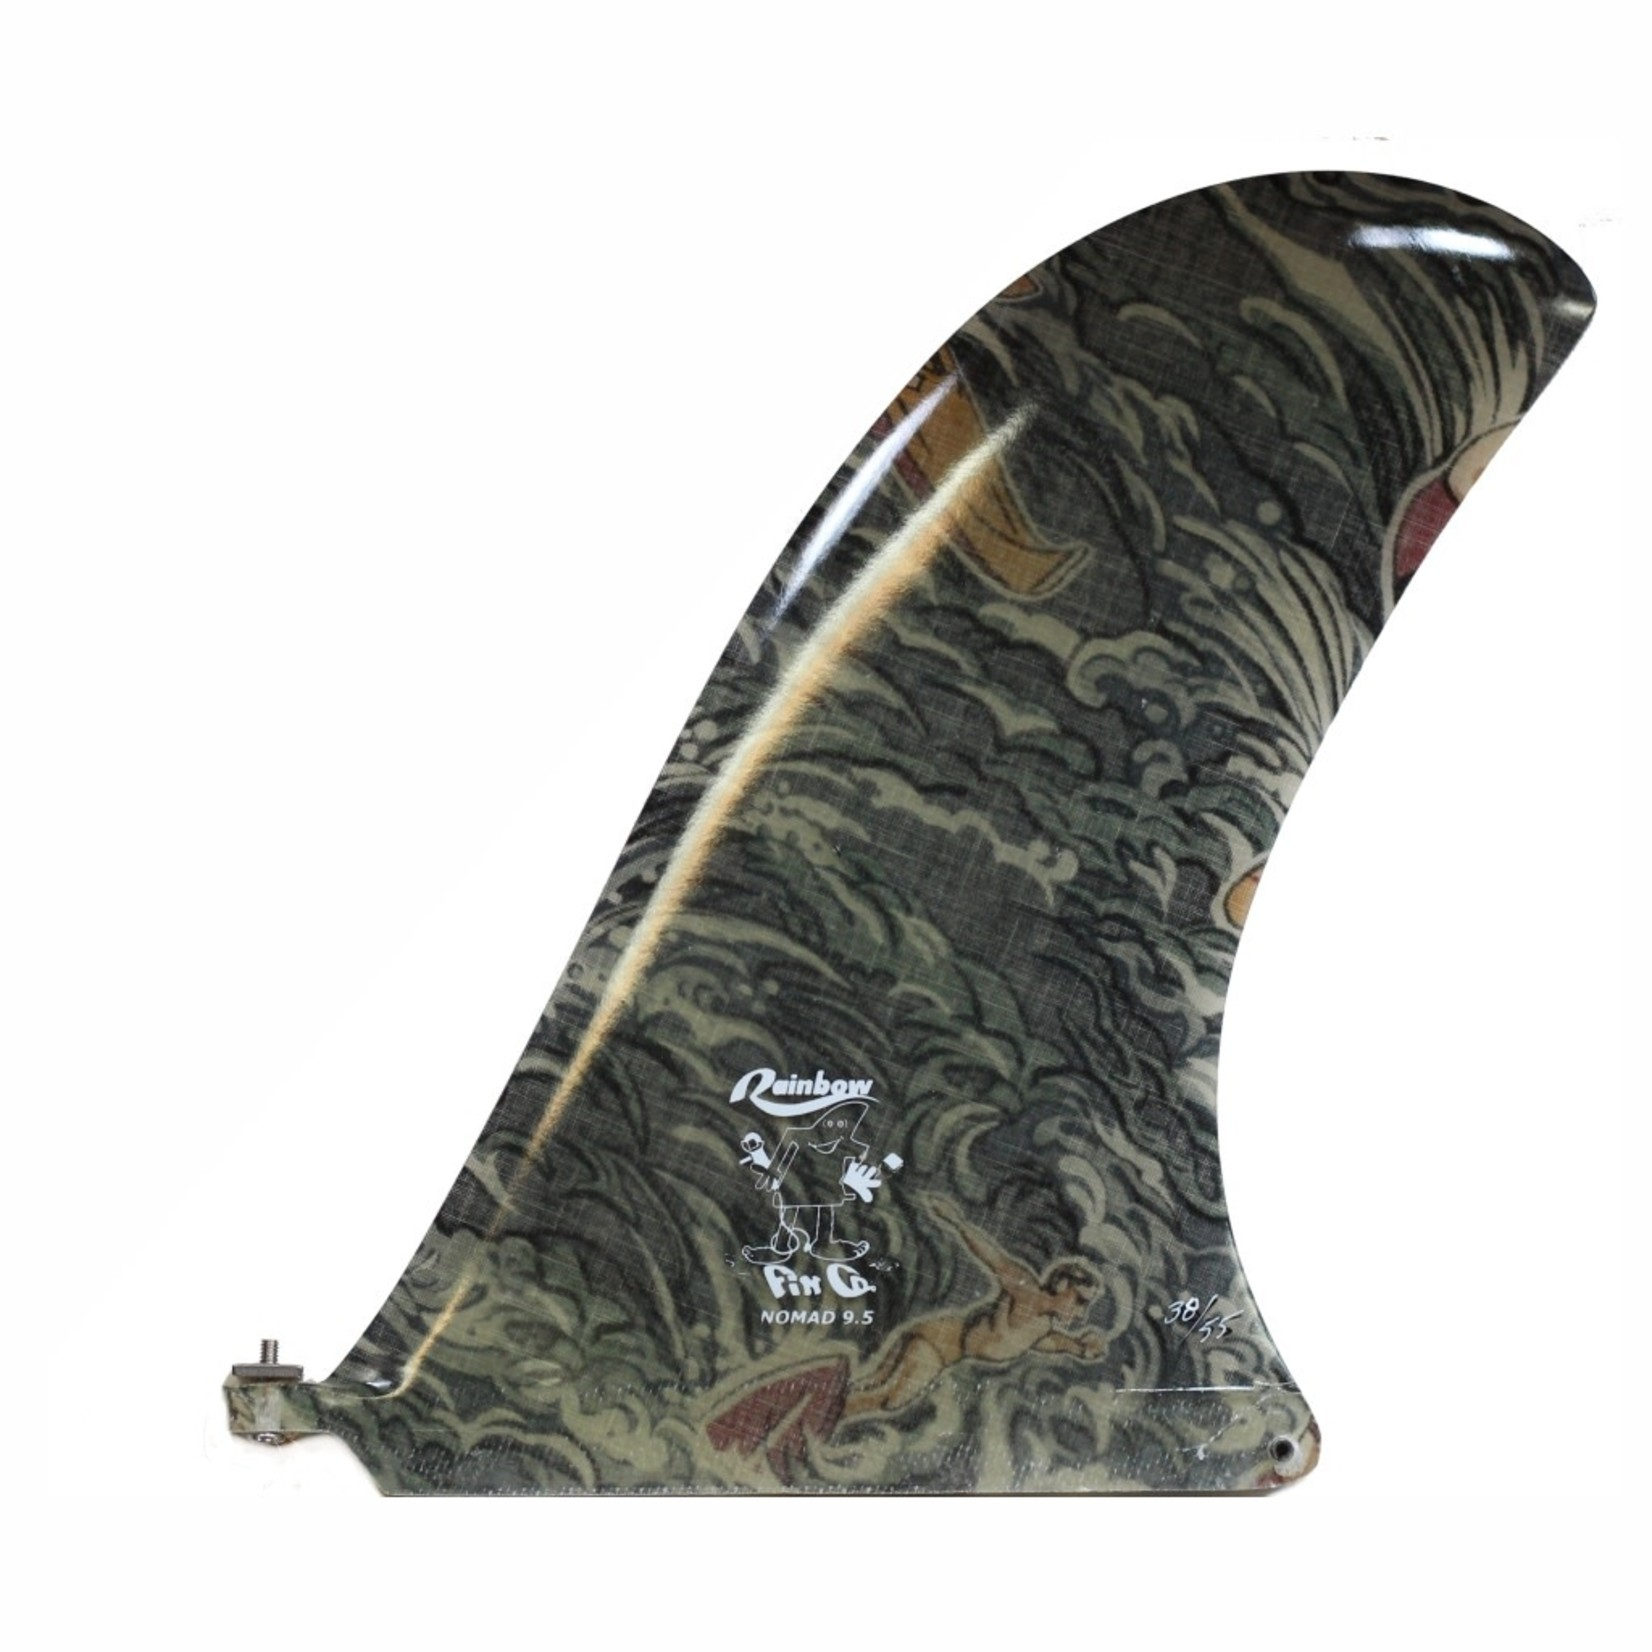 Rainbow Fin Nomad Traveller Series 9.5 Collector